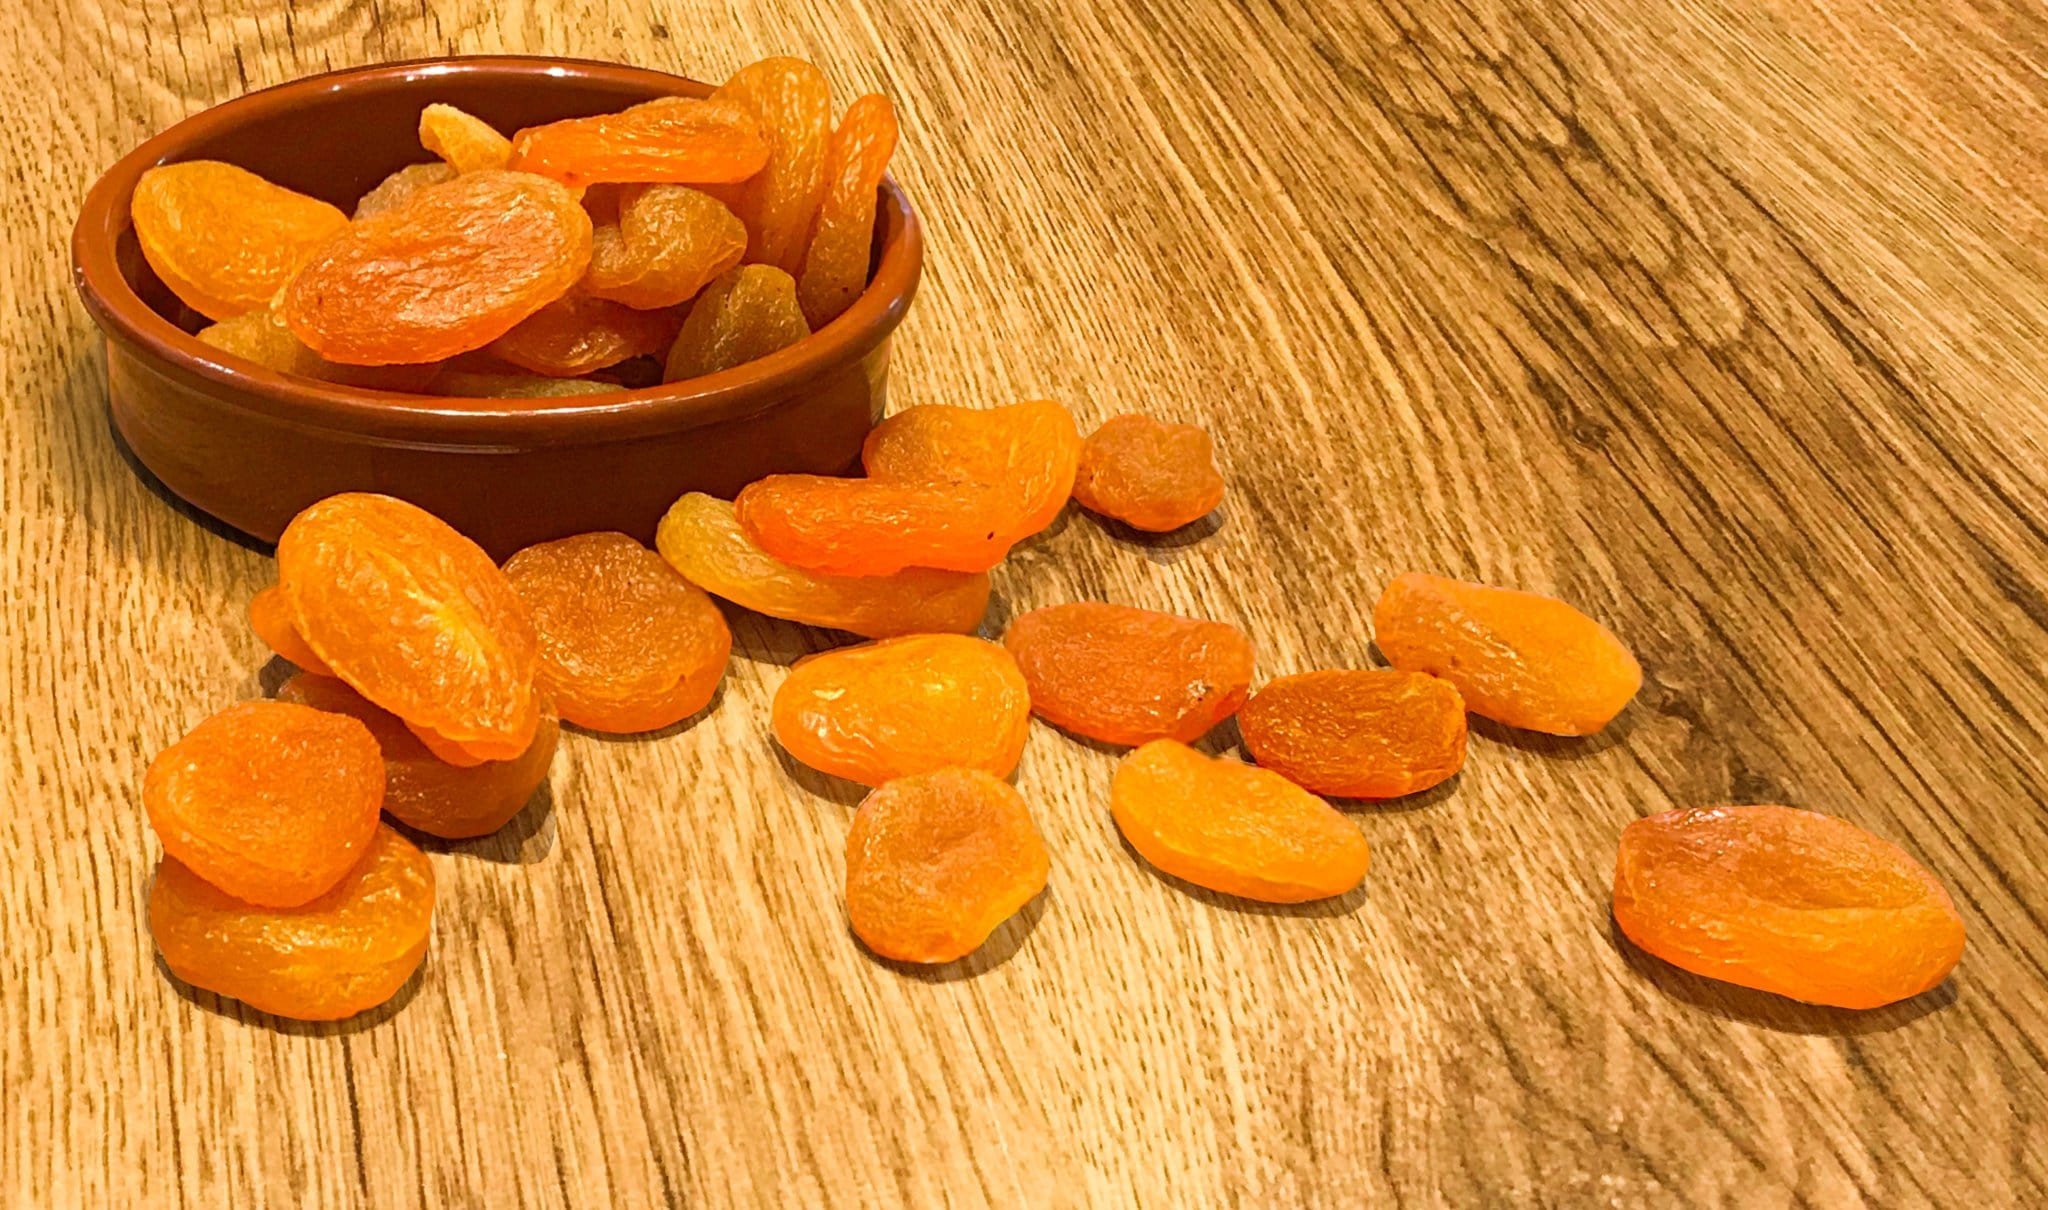 dried apricots dried fruit whole foods wholefoods health foods vegan plant based vegetarian diet superfood